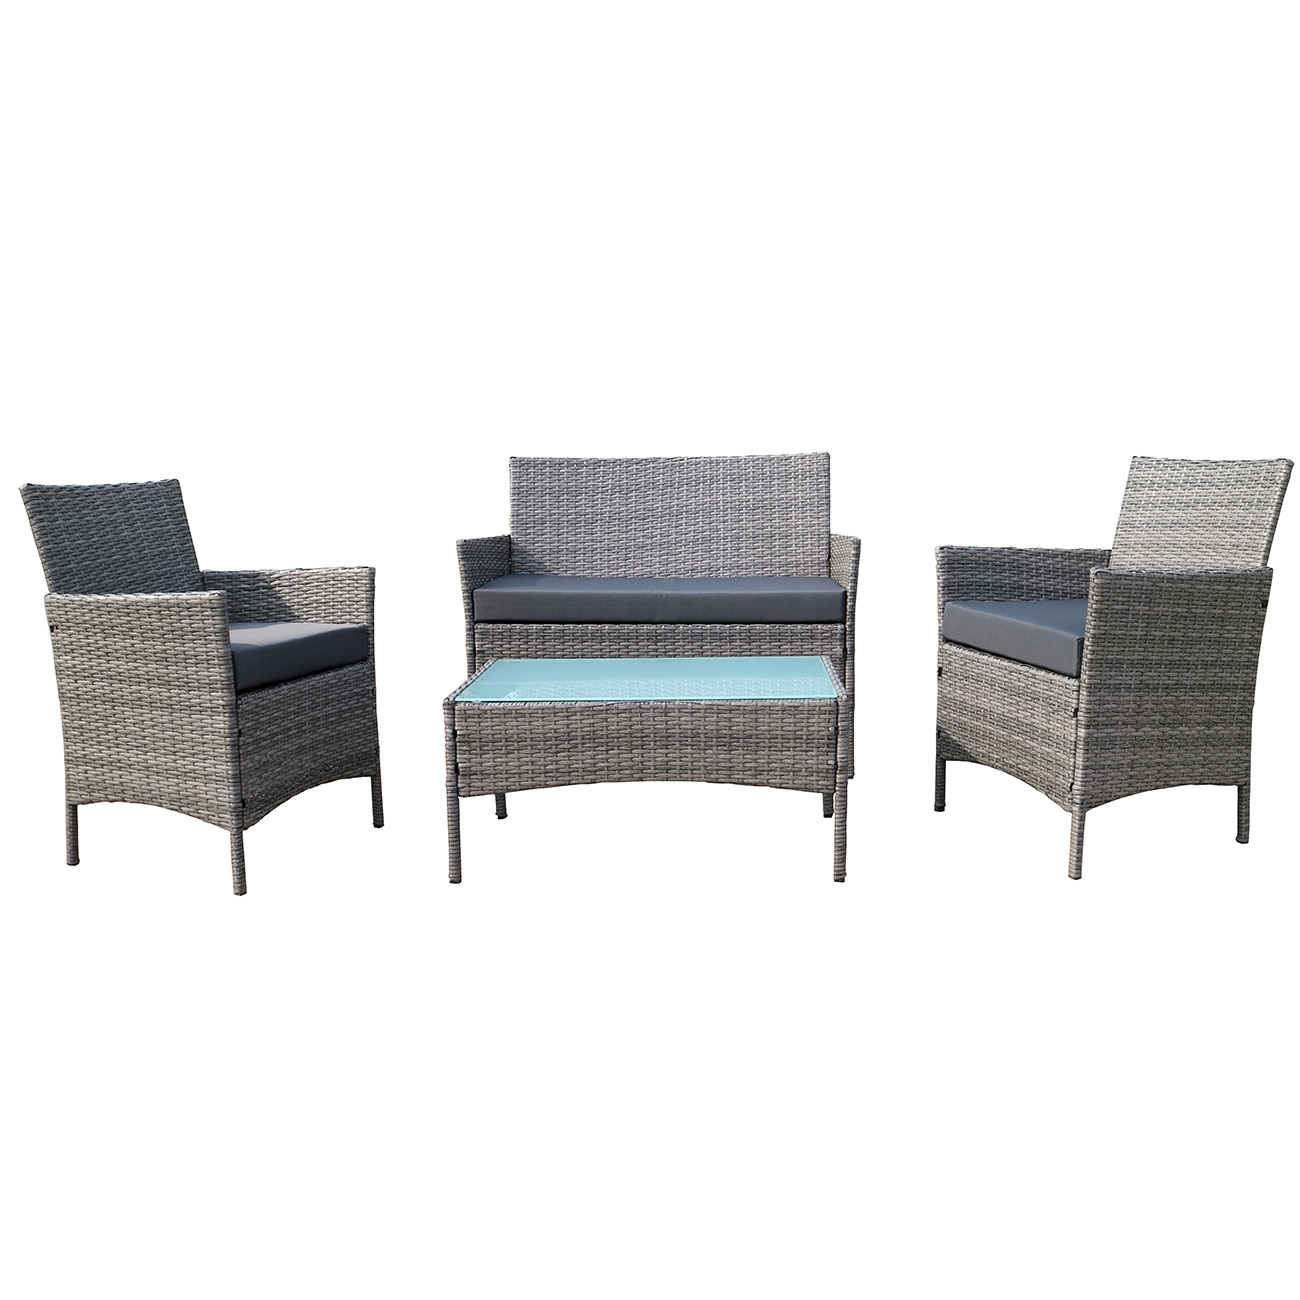 4 pc rattan furniture set outdoor patio garden sectional pe wicker cushion sofa ebay. Black Bedroom Furniture Sets. Home Design Ideas